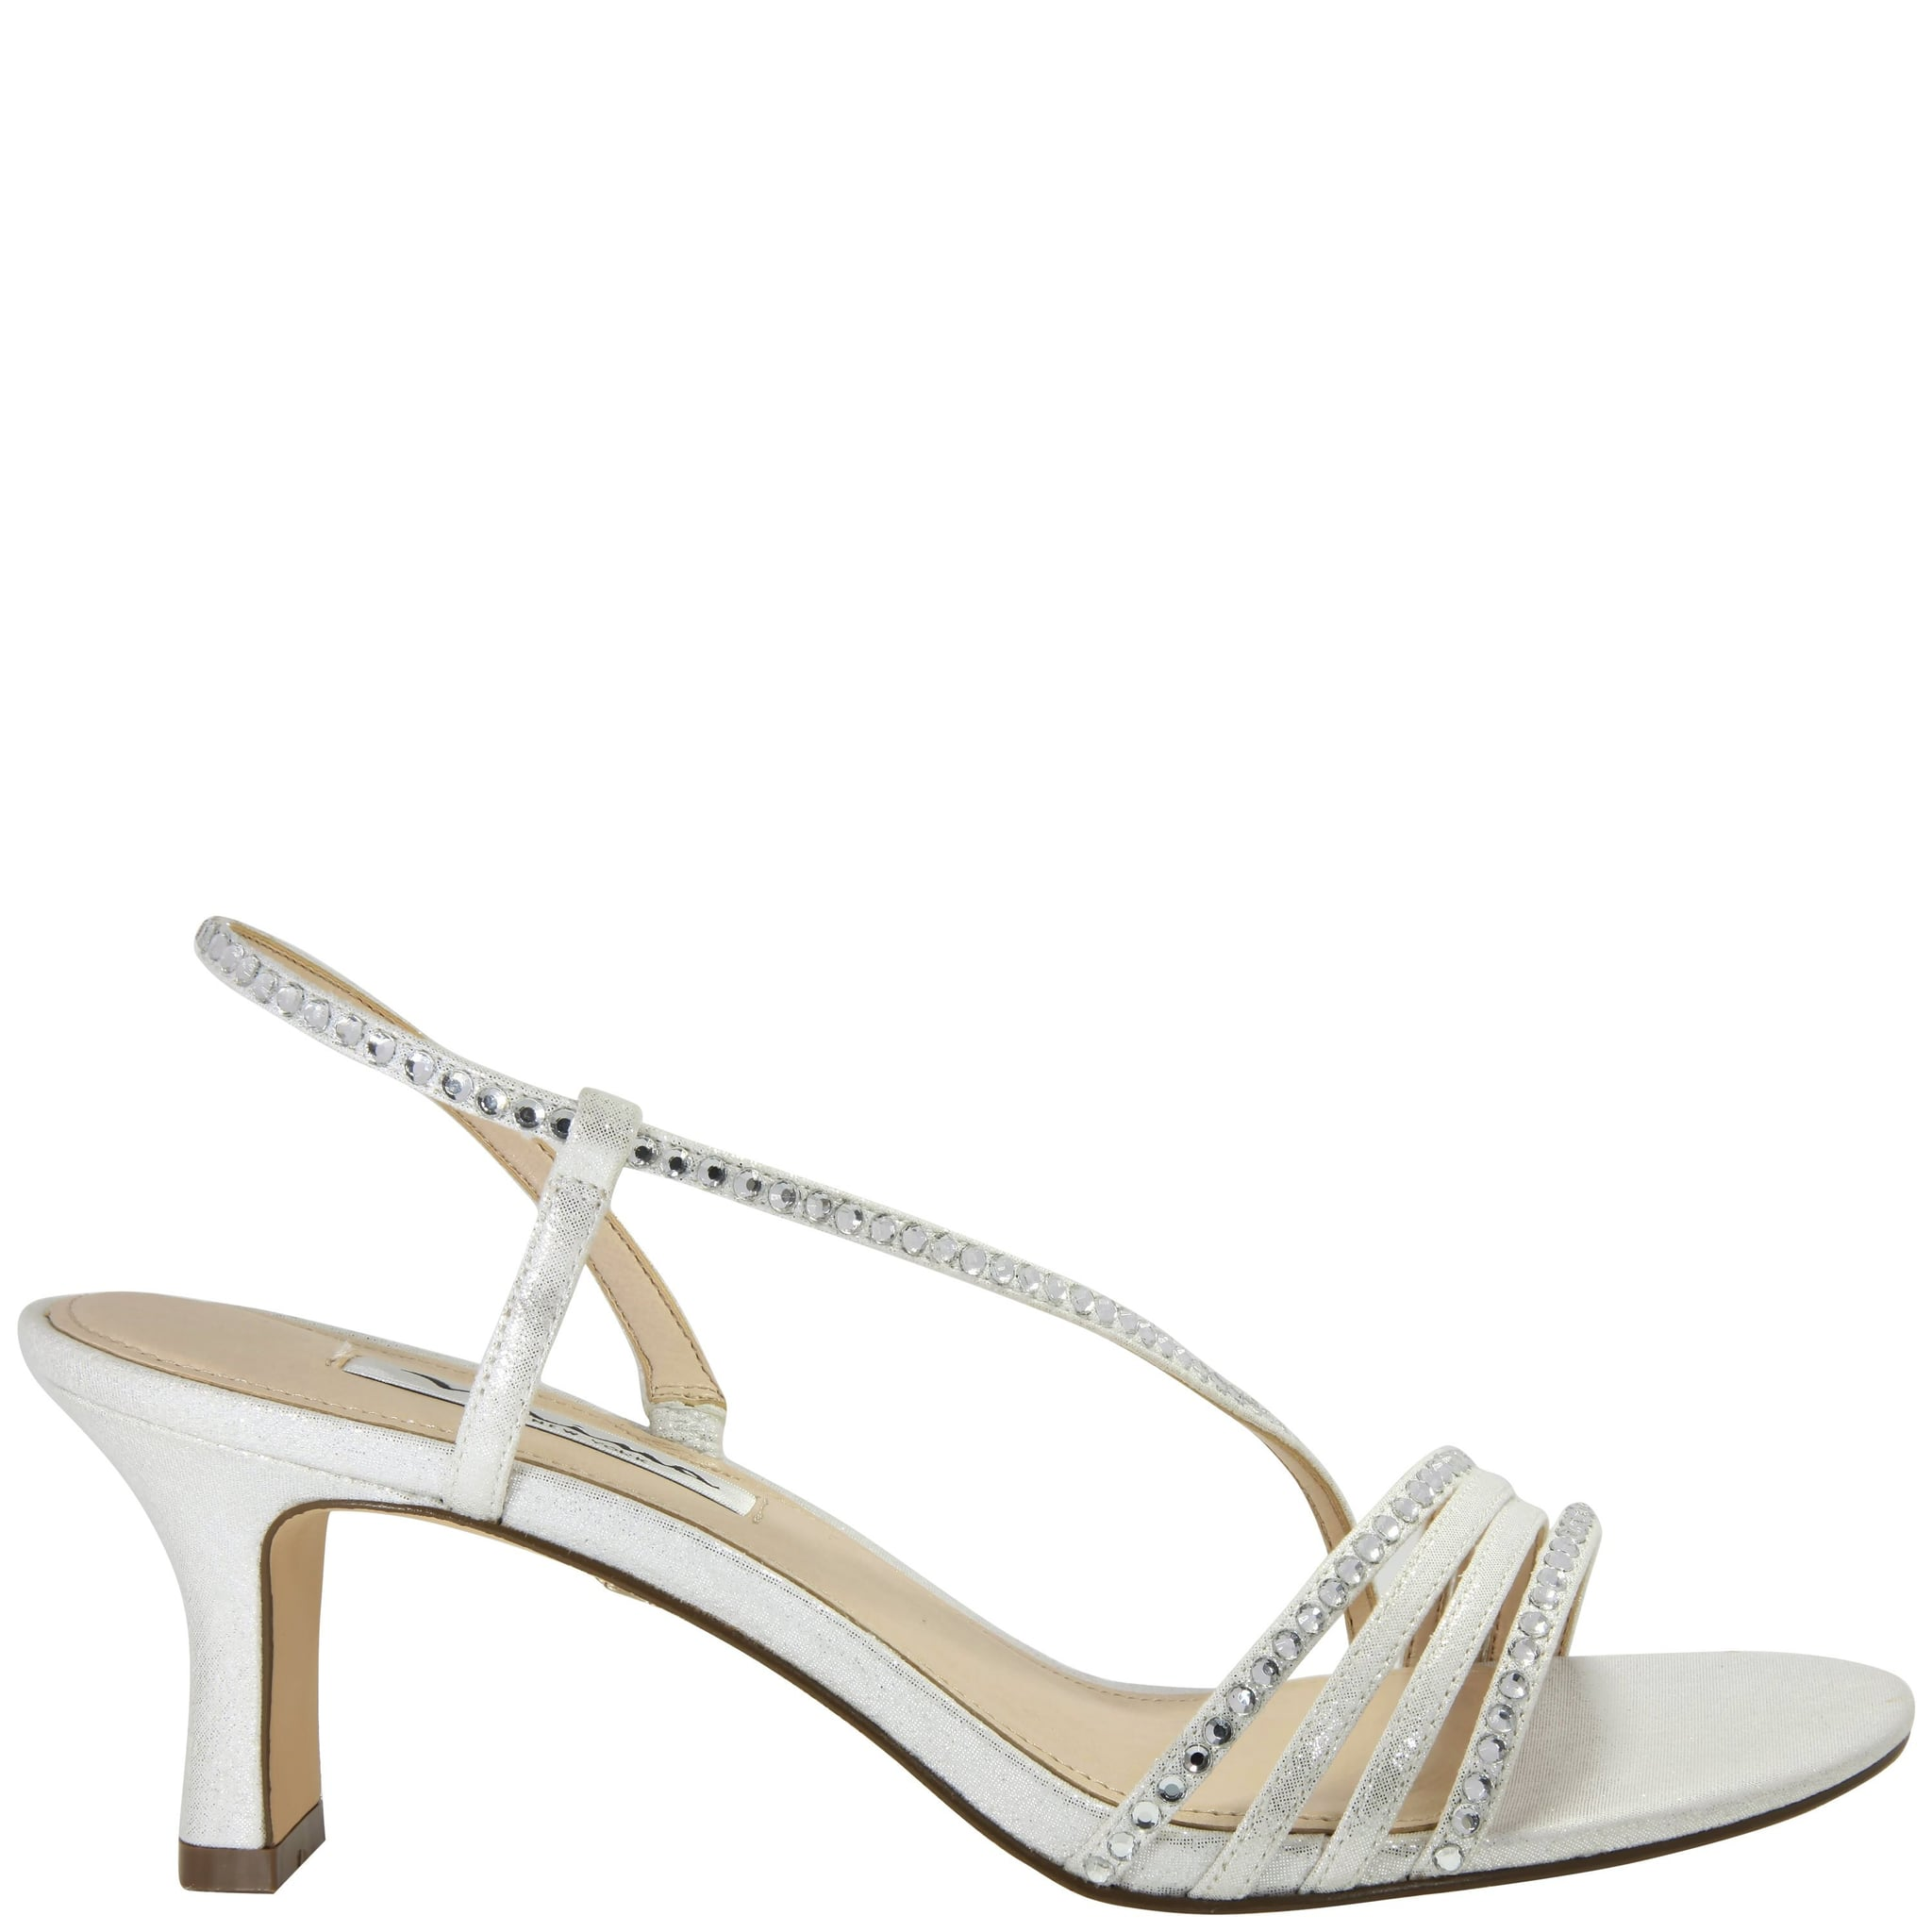 Silver Kitten Heels This Throwback Sandal Is Perfect For Weddings Date Night And Beyond Popsugar Fashion Photo 15